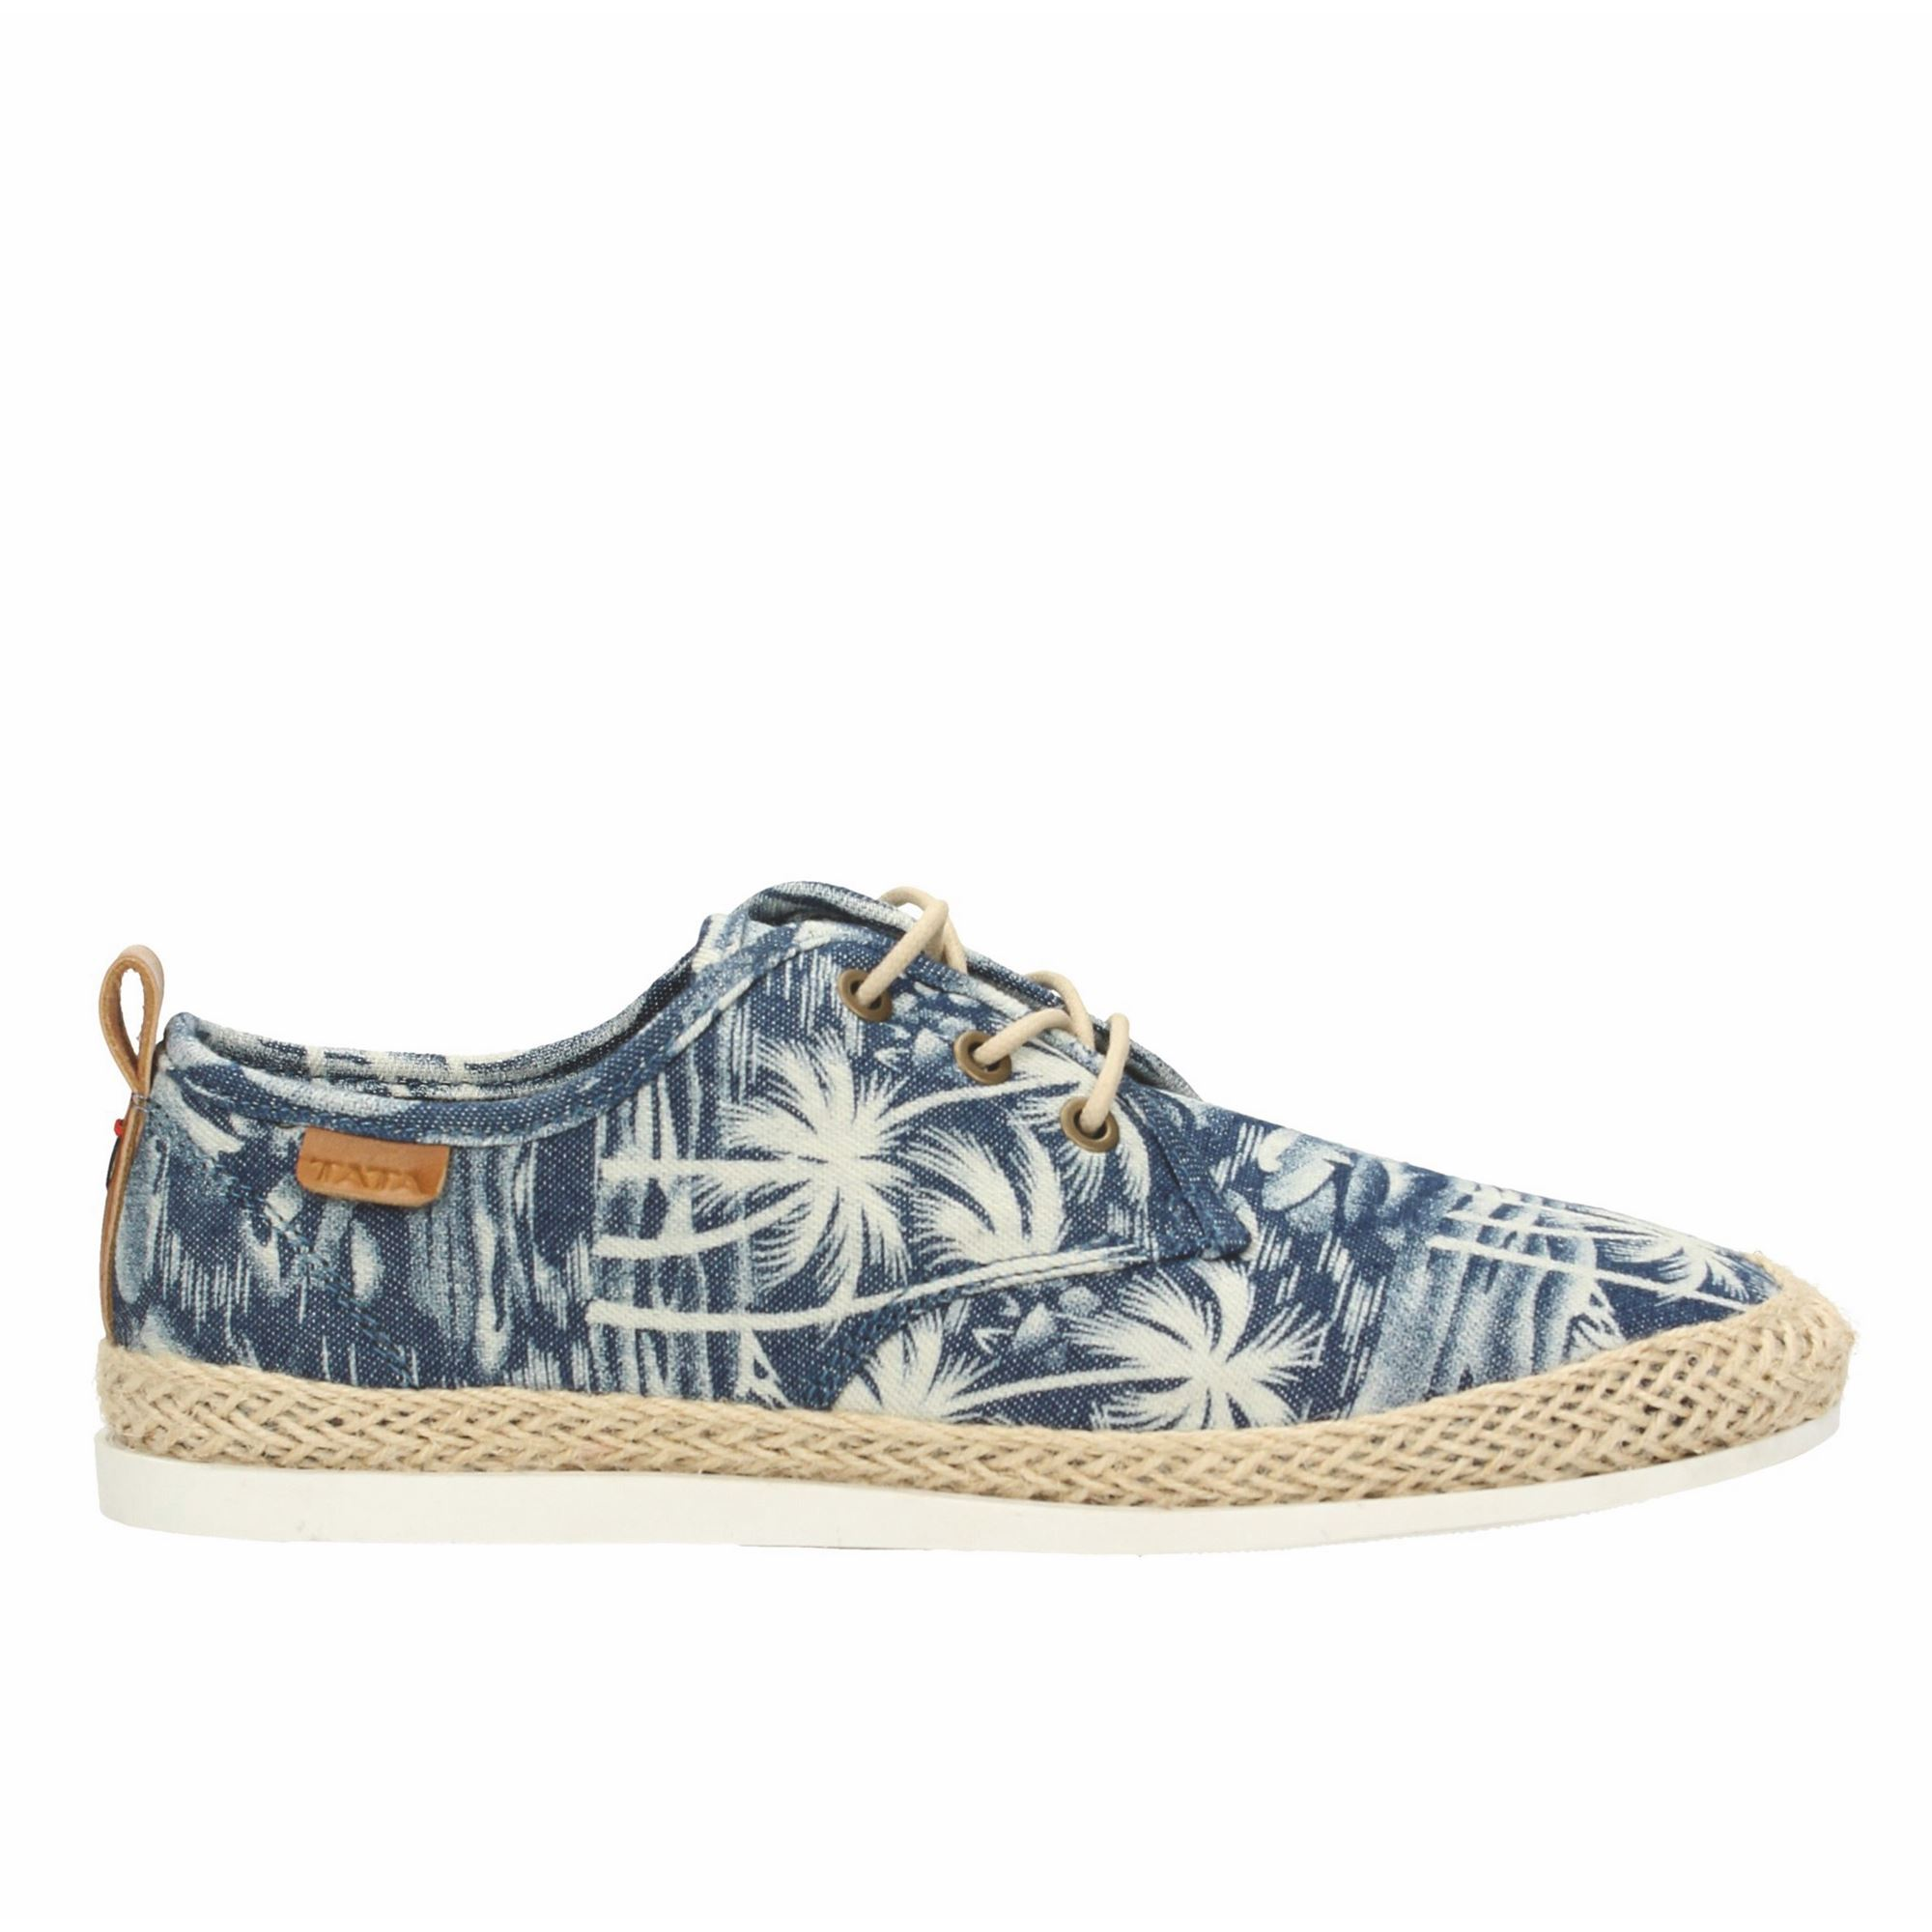 Tata Italia Shoes Man Sneakers Navy KMS7036